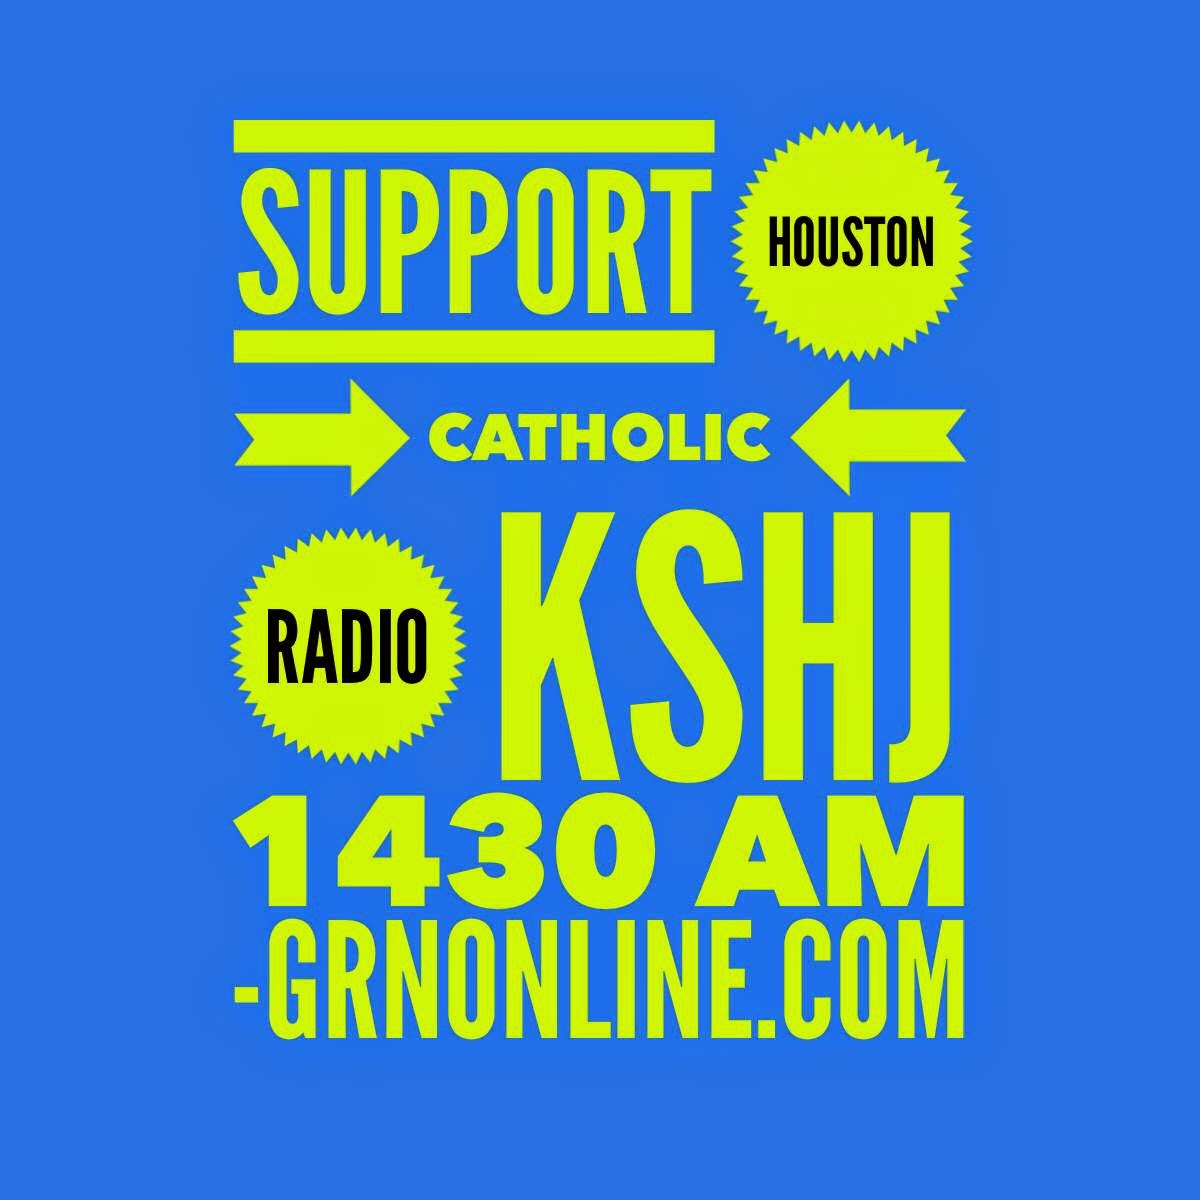 Support Houston Catholic Radio, KSHJ 1430 AM